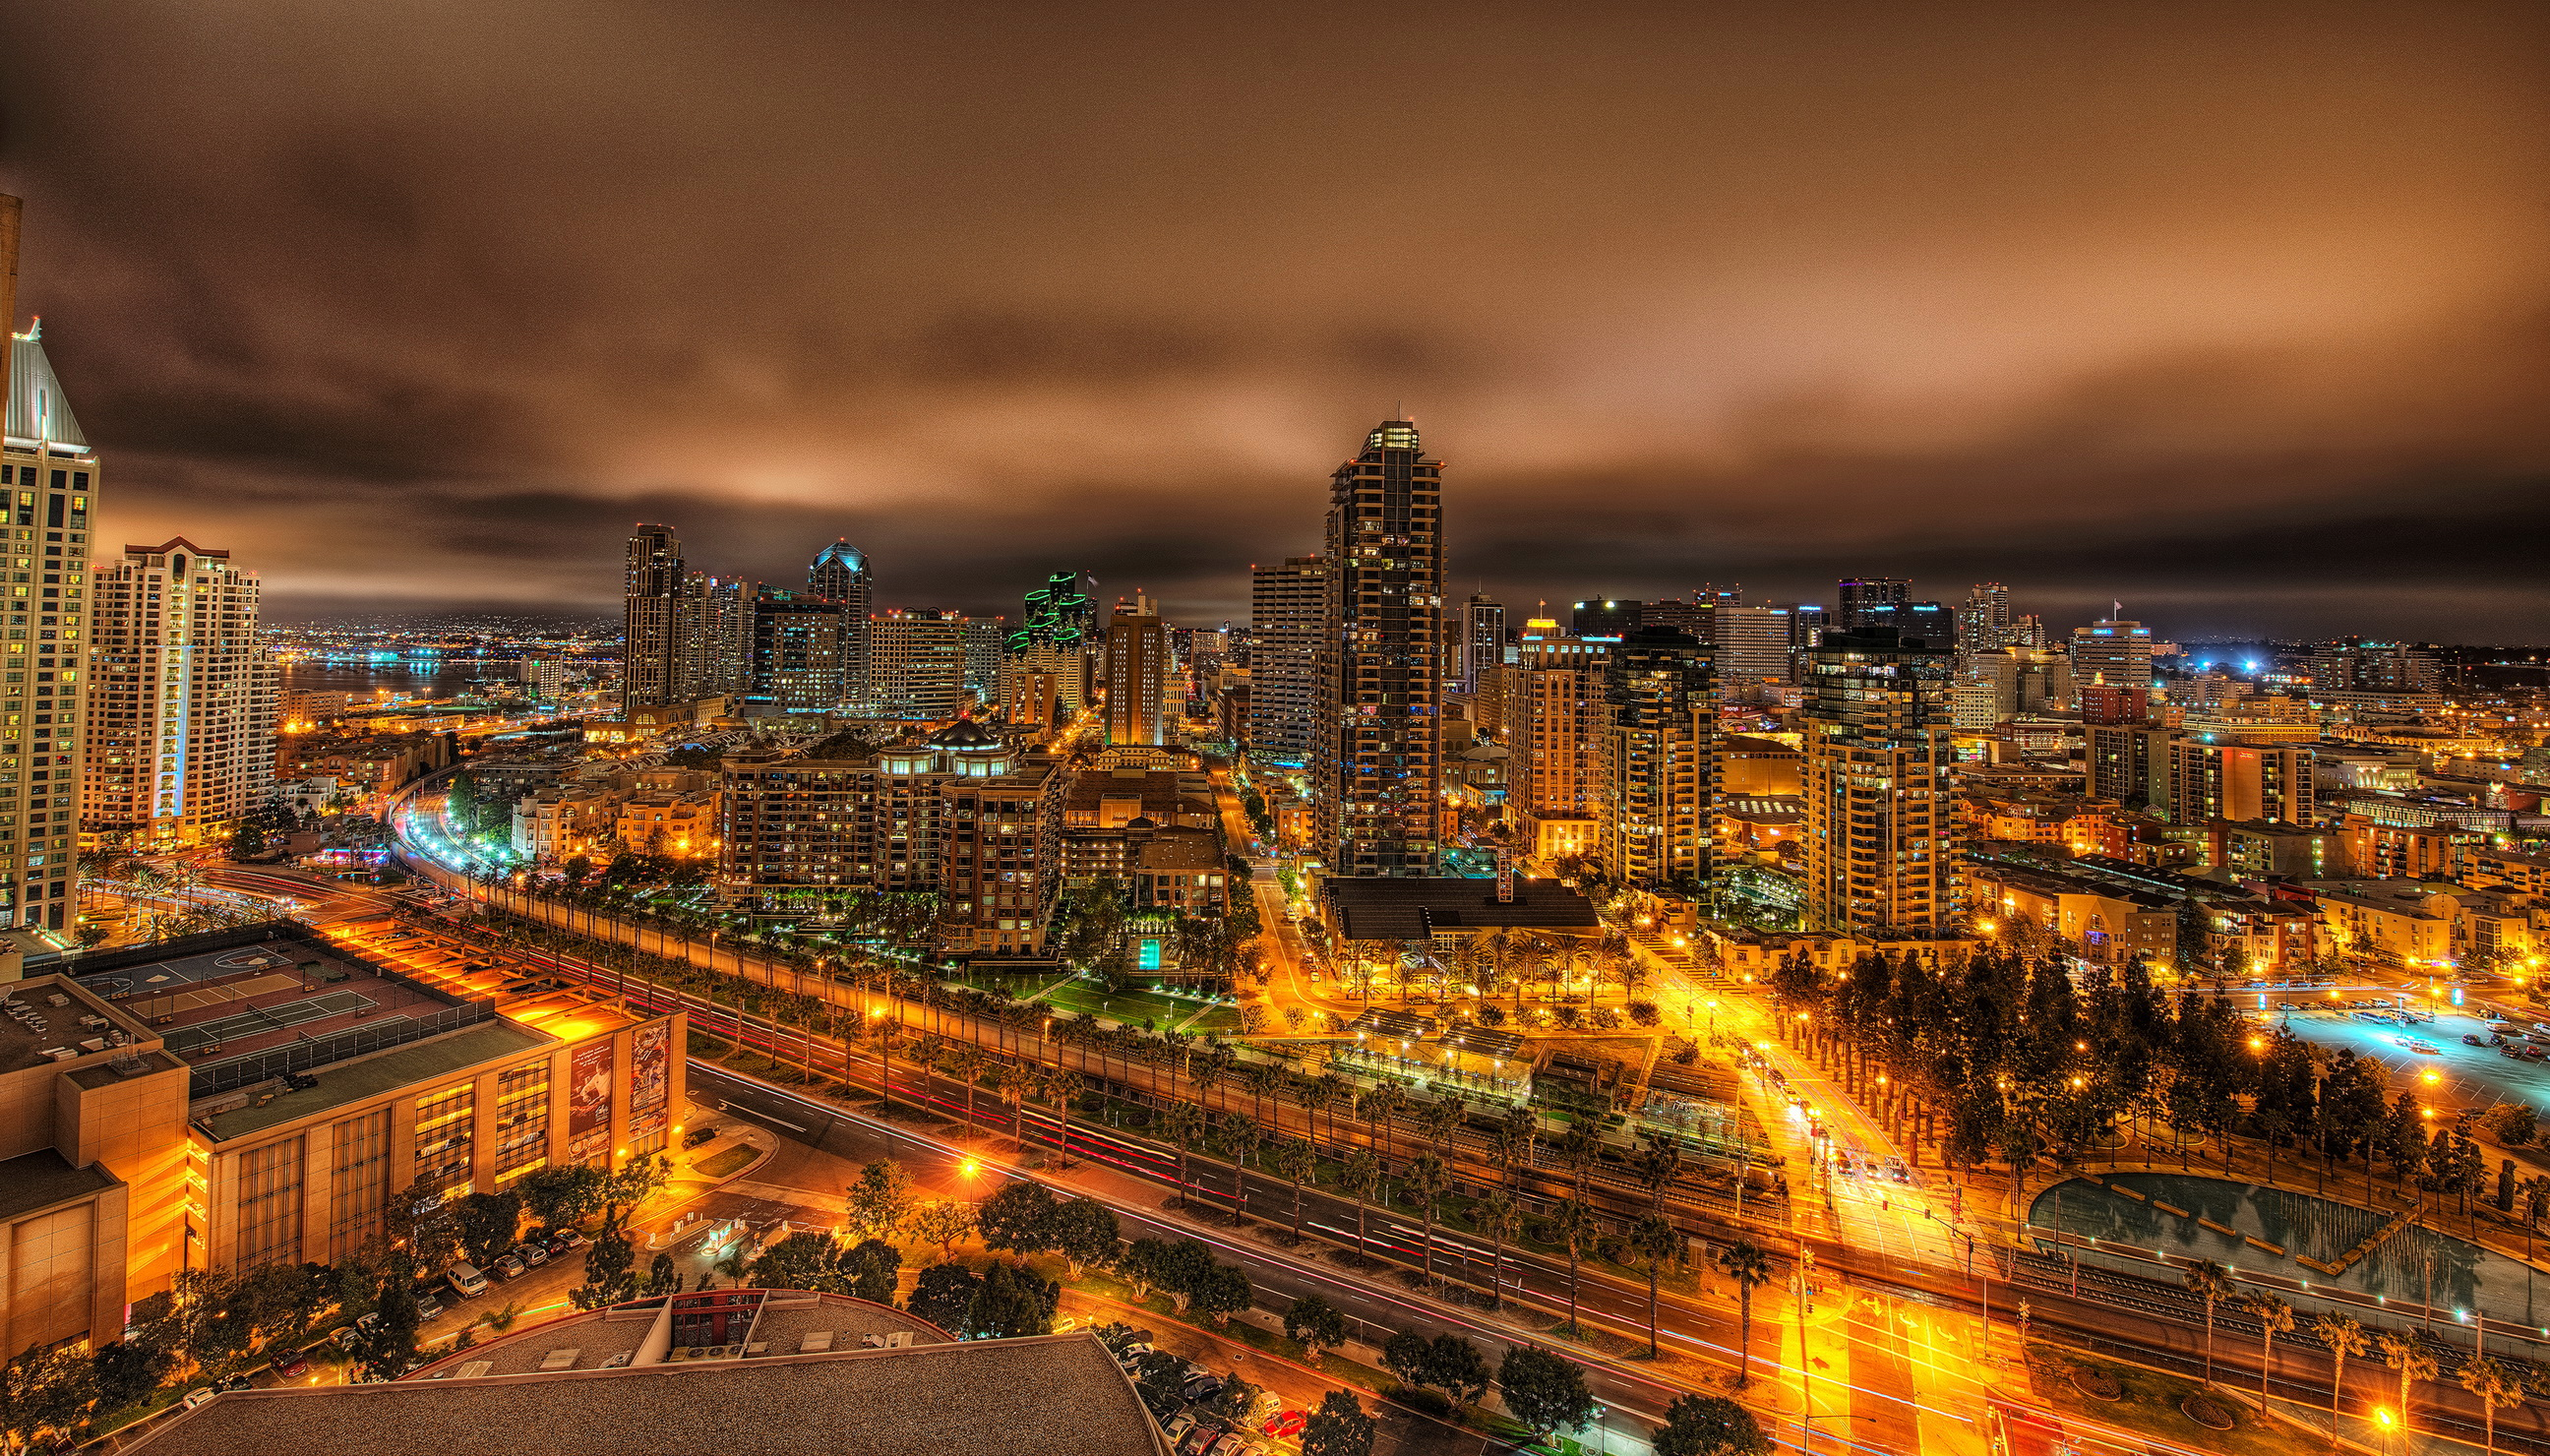 Wallpapers USA Houses California San Diego From above Night Megapolis 2592x1480